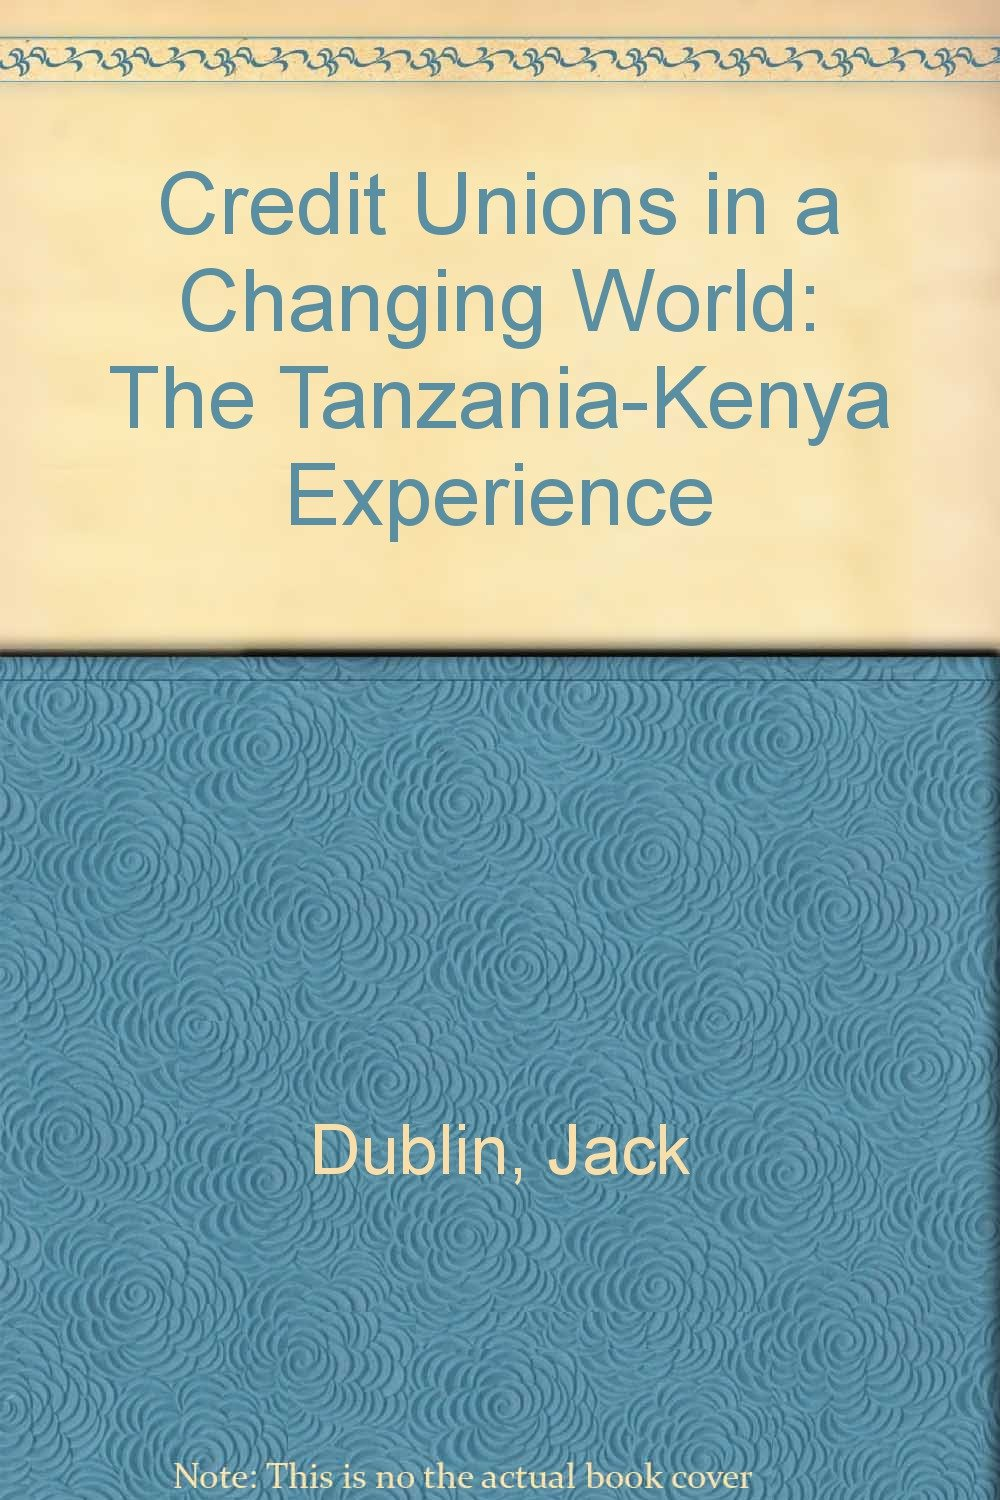 Image for Credit Unions in a Changing World: The Tanzania-Kenya Experience